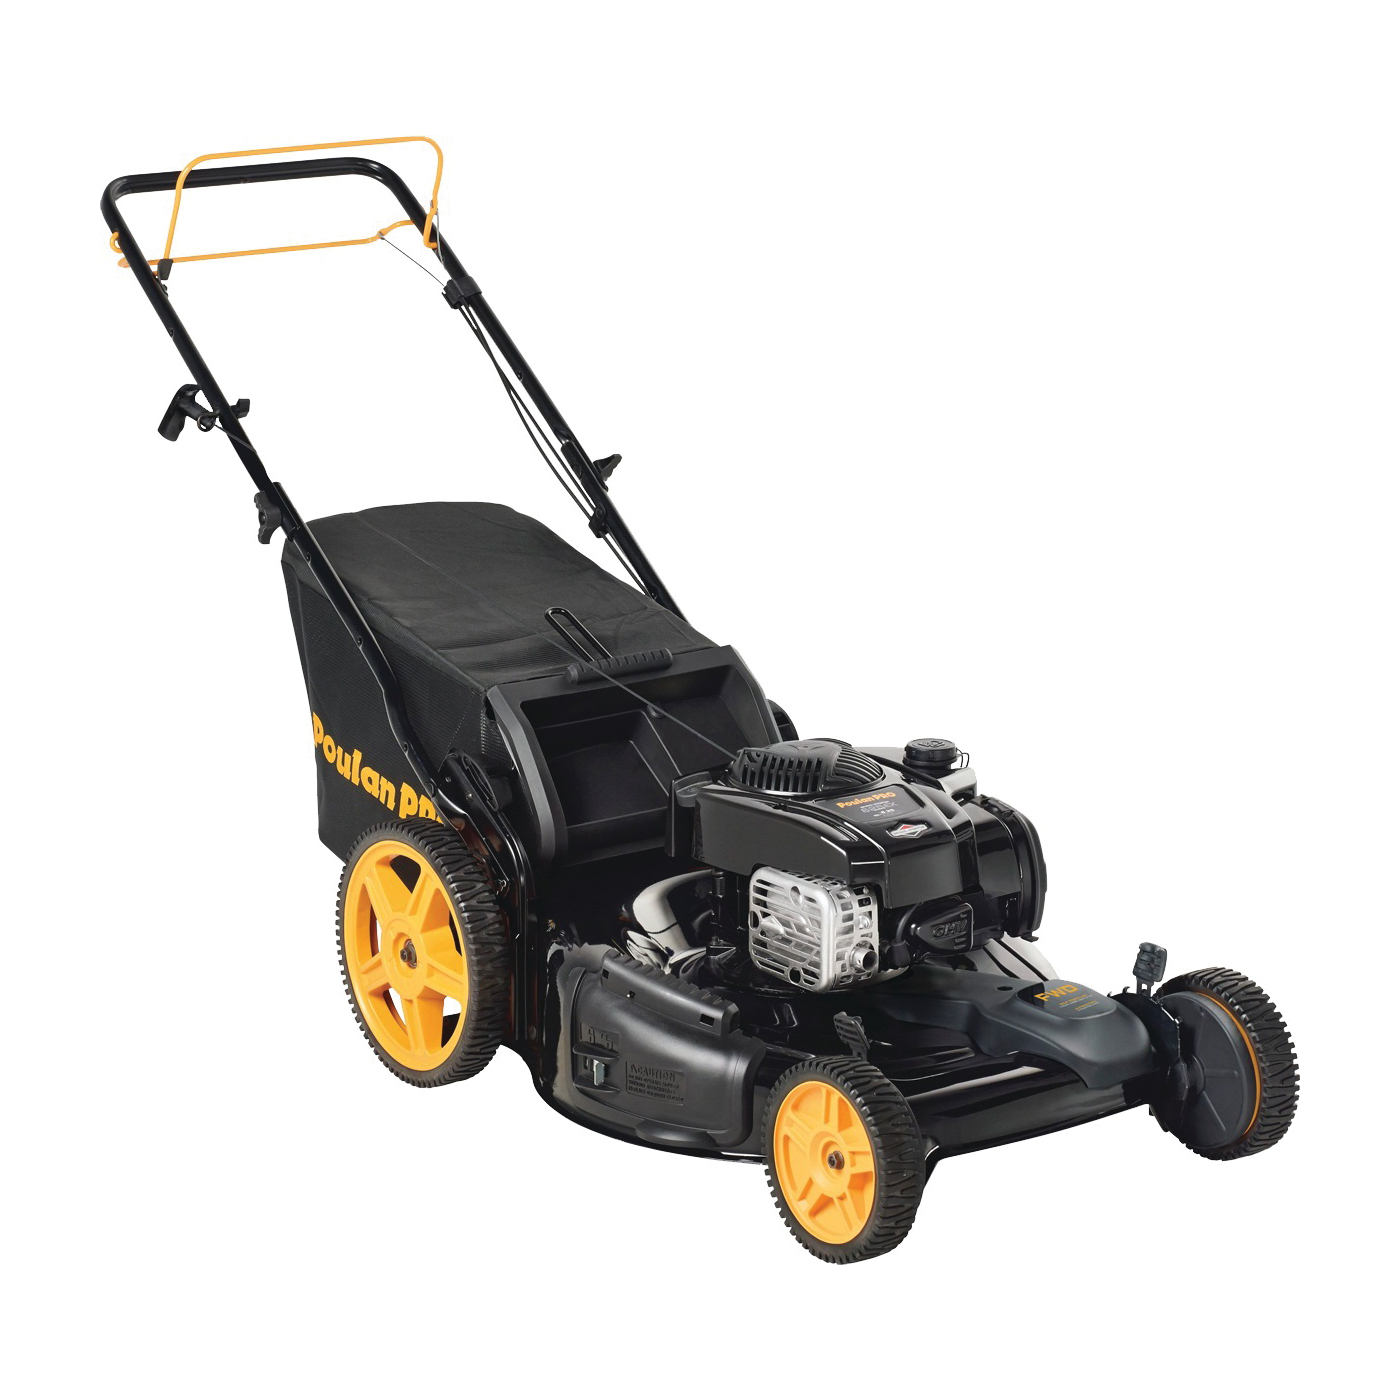 Picture of Poulan Pro PR675Y22RHP Mower, 6.75 hp, 160 cc Engine Displacement, Gasoline, 22 in W Cutting, Mulcher Blade